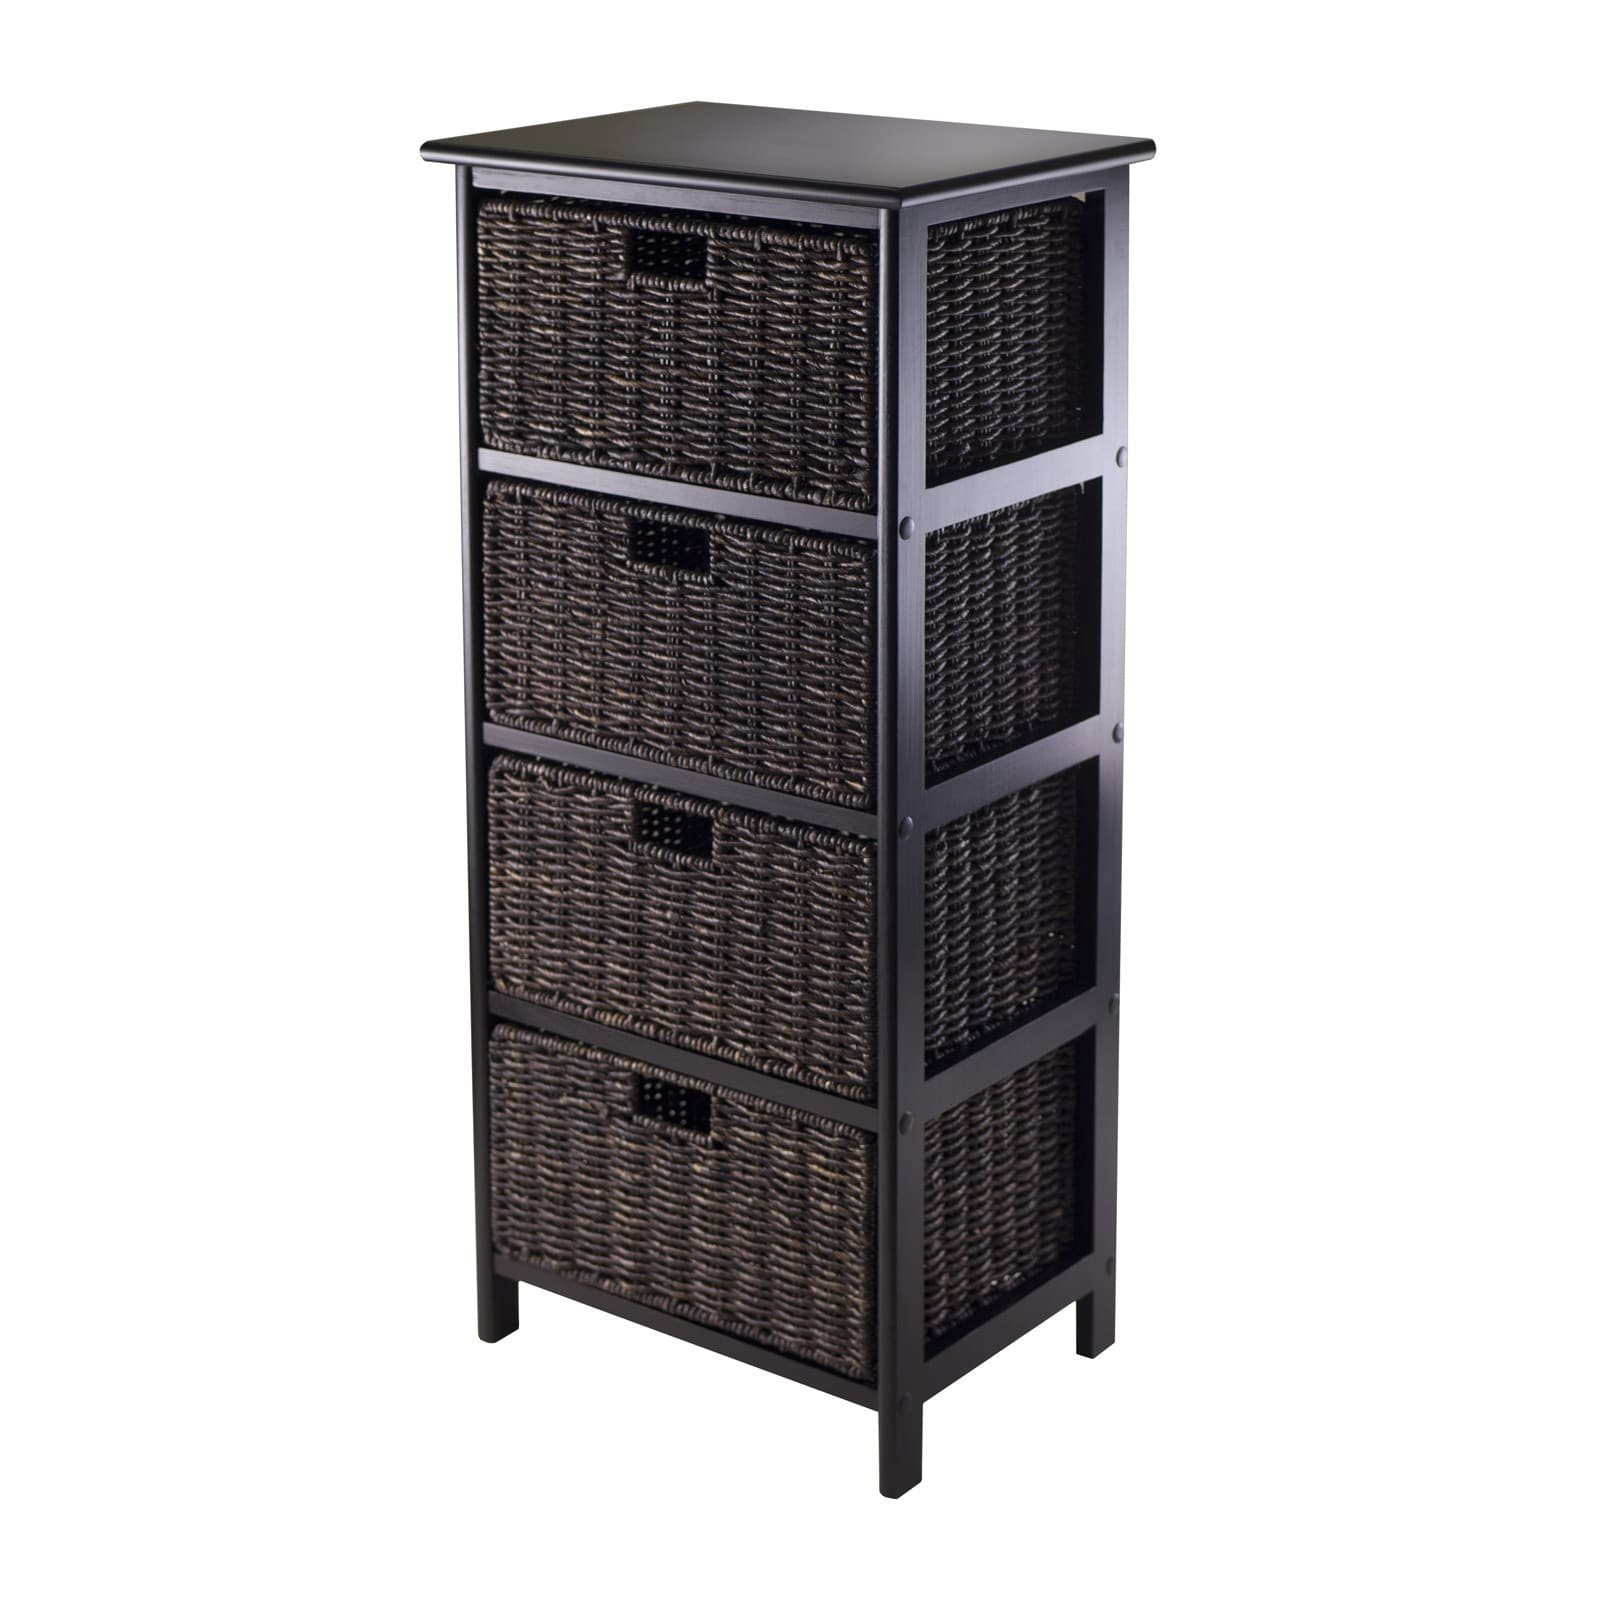 Luxury Home Omaha Brown Wood Storage Rack with 4 Foldable Baskets